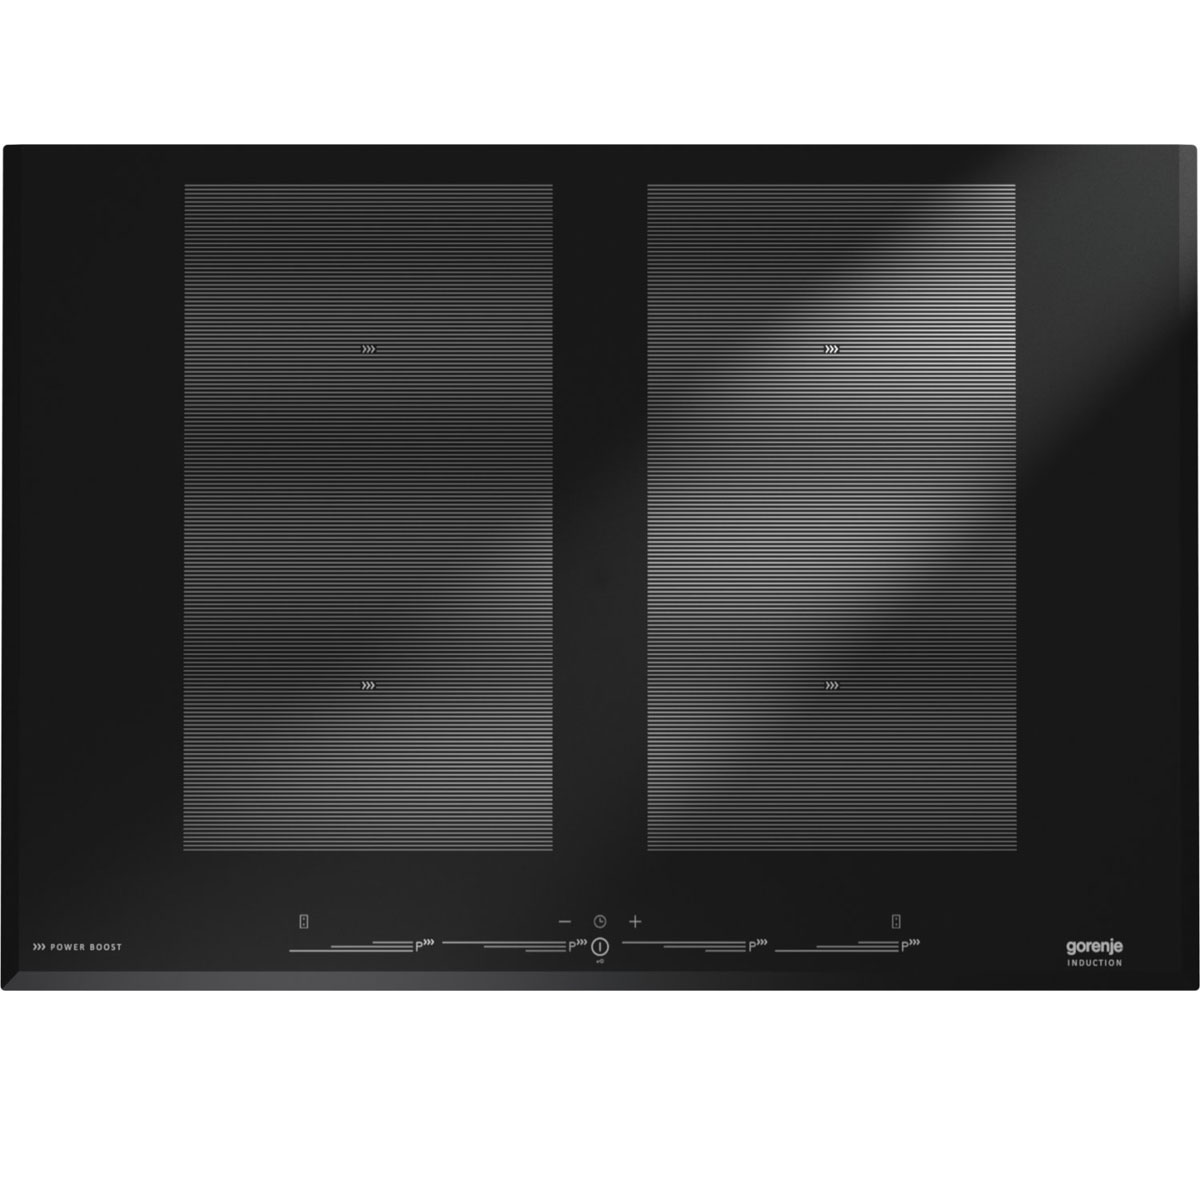 Gorenje IS777USC 75cm Induction Cooktop 33017